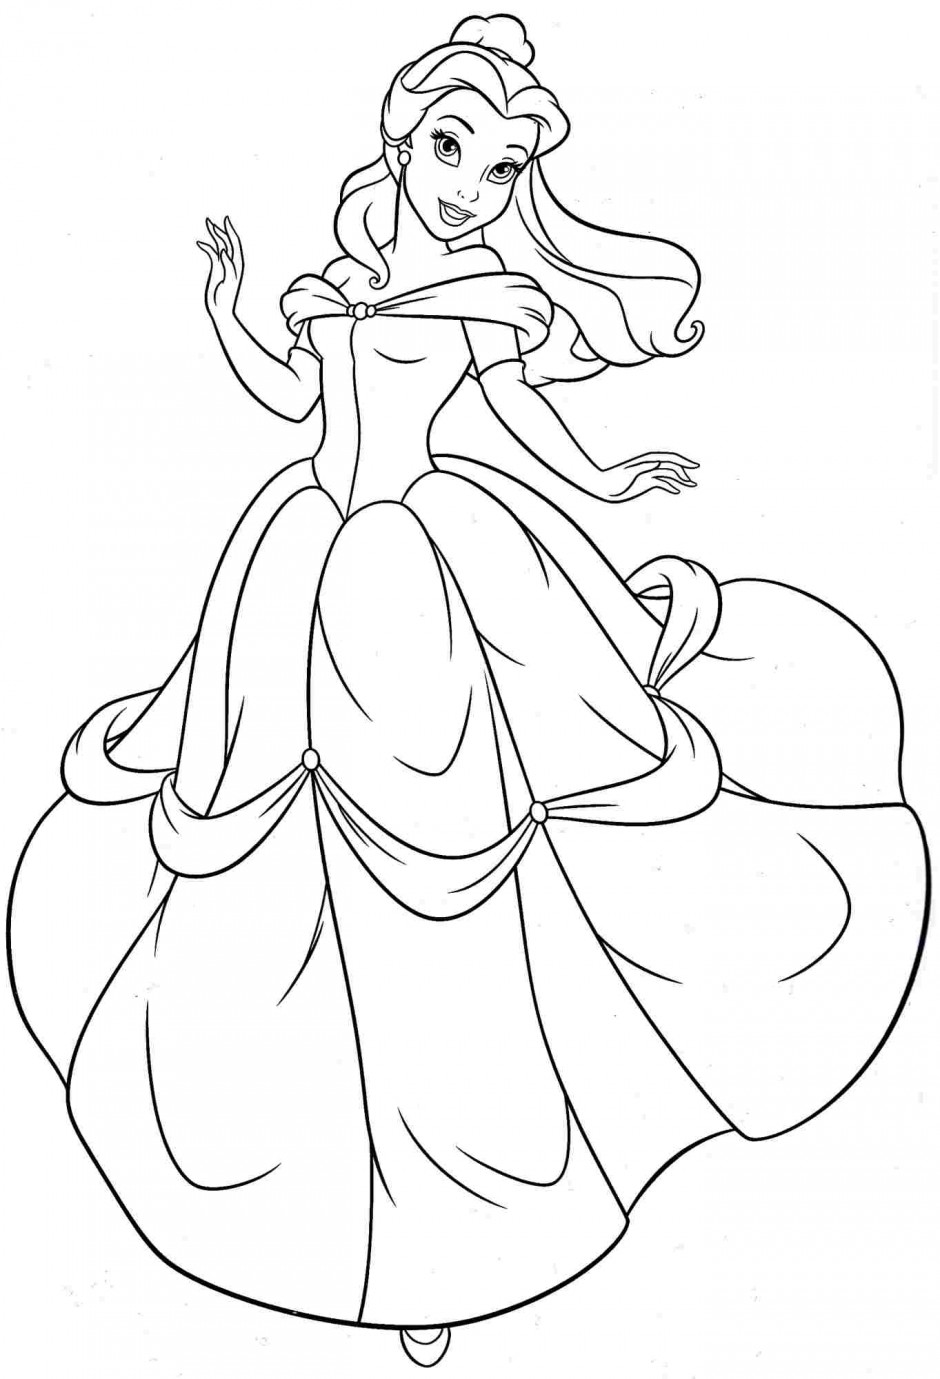 printables coloring pages fall coloring sheets printable activity shelter coloring printables pages